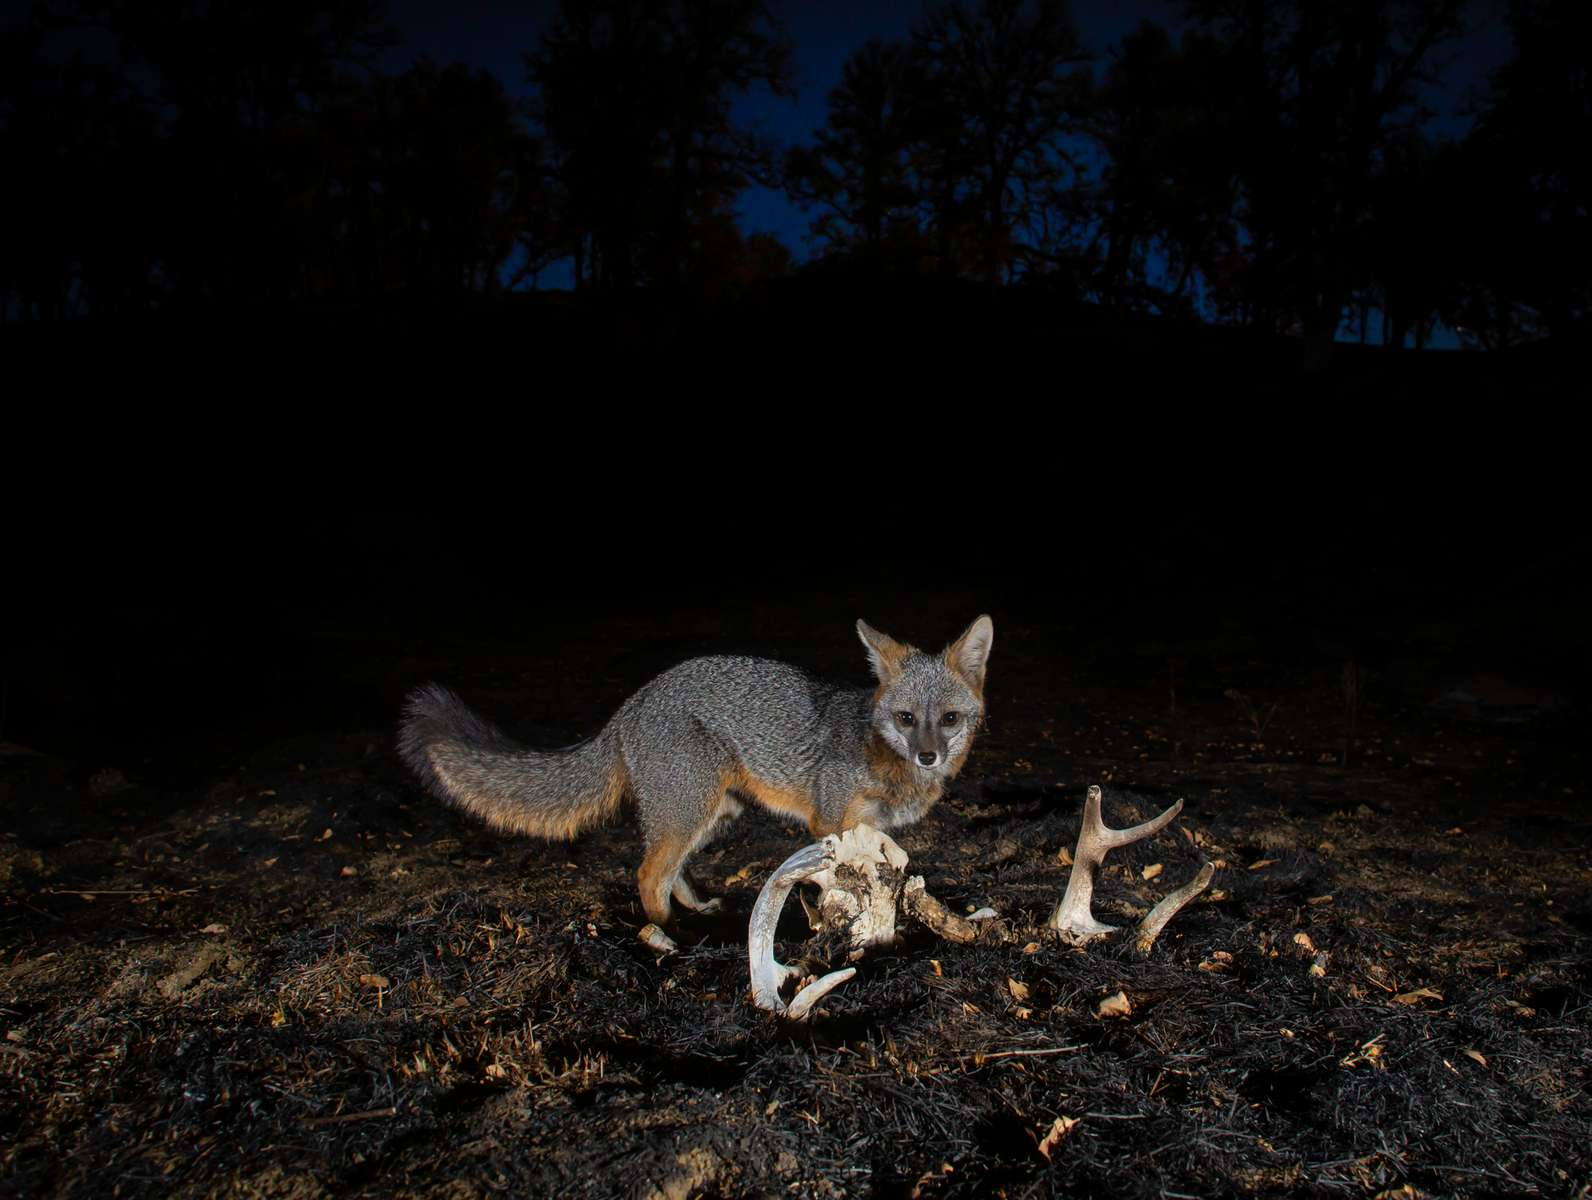 A gray fox investigates an old skull after a wildfire. Berryessa Snow Mountain National Monument, California (camera trap)